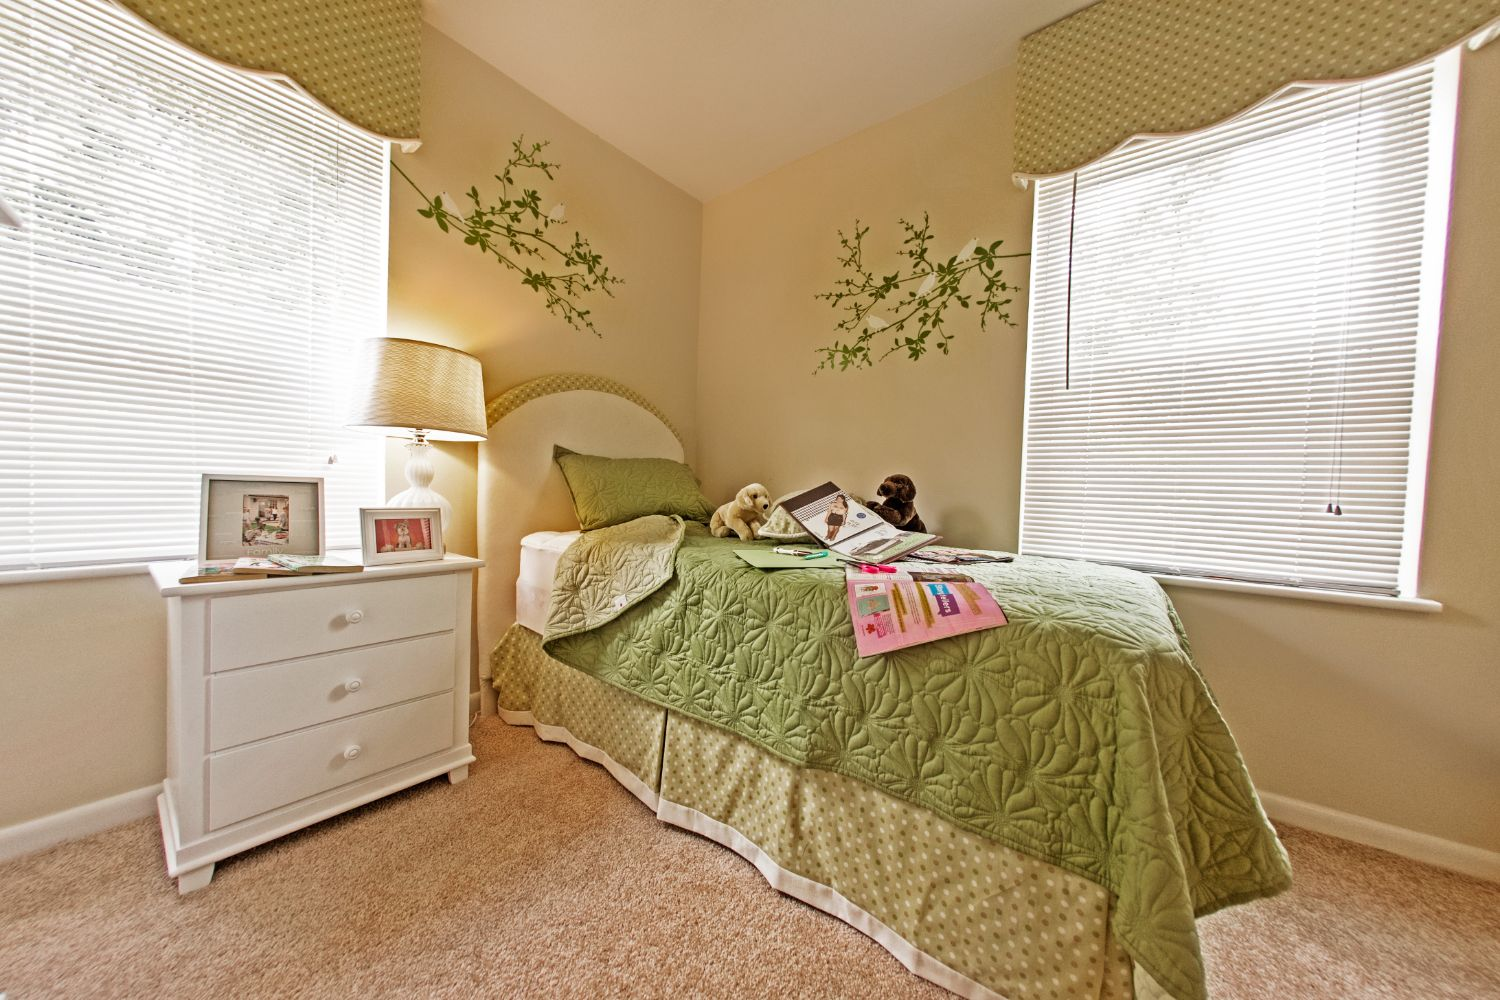 Comfortable bedroom with painted walls